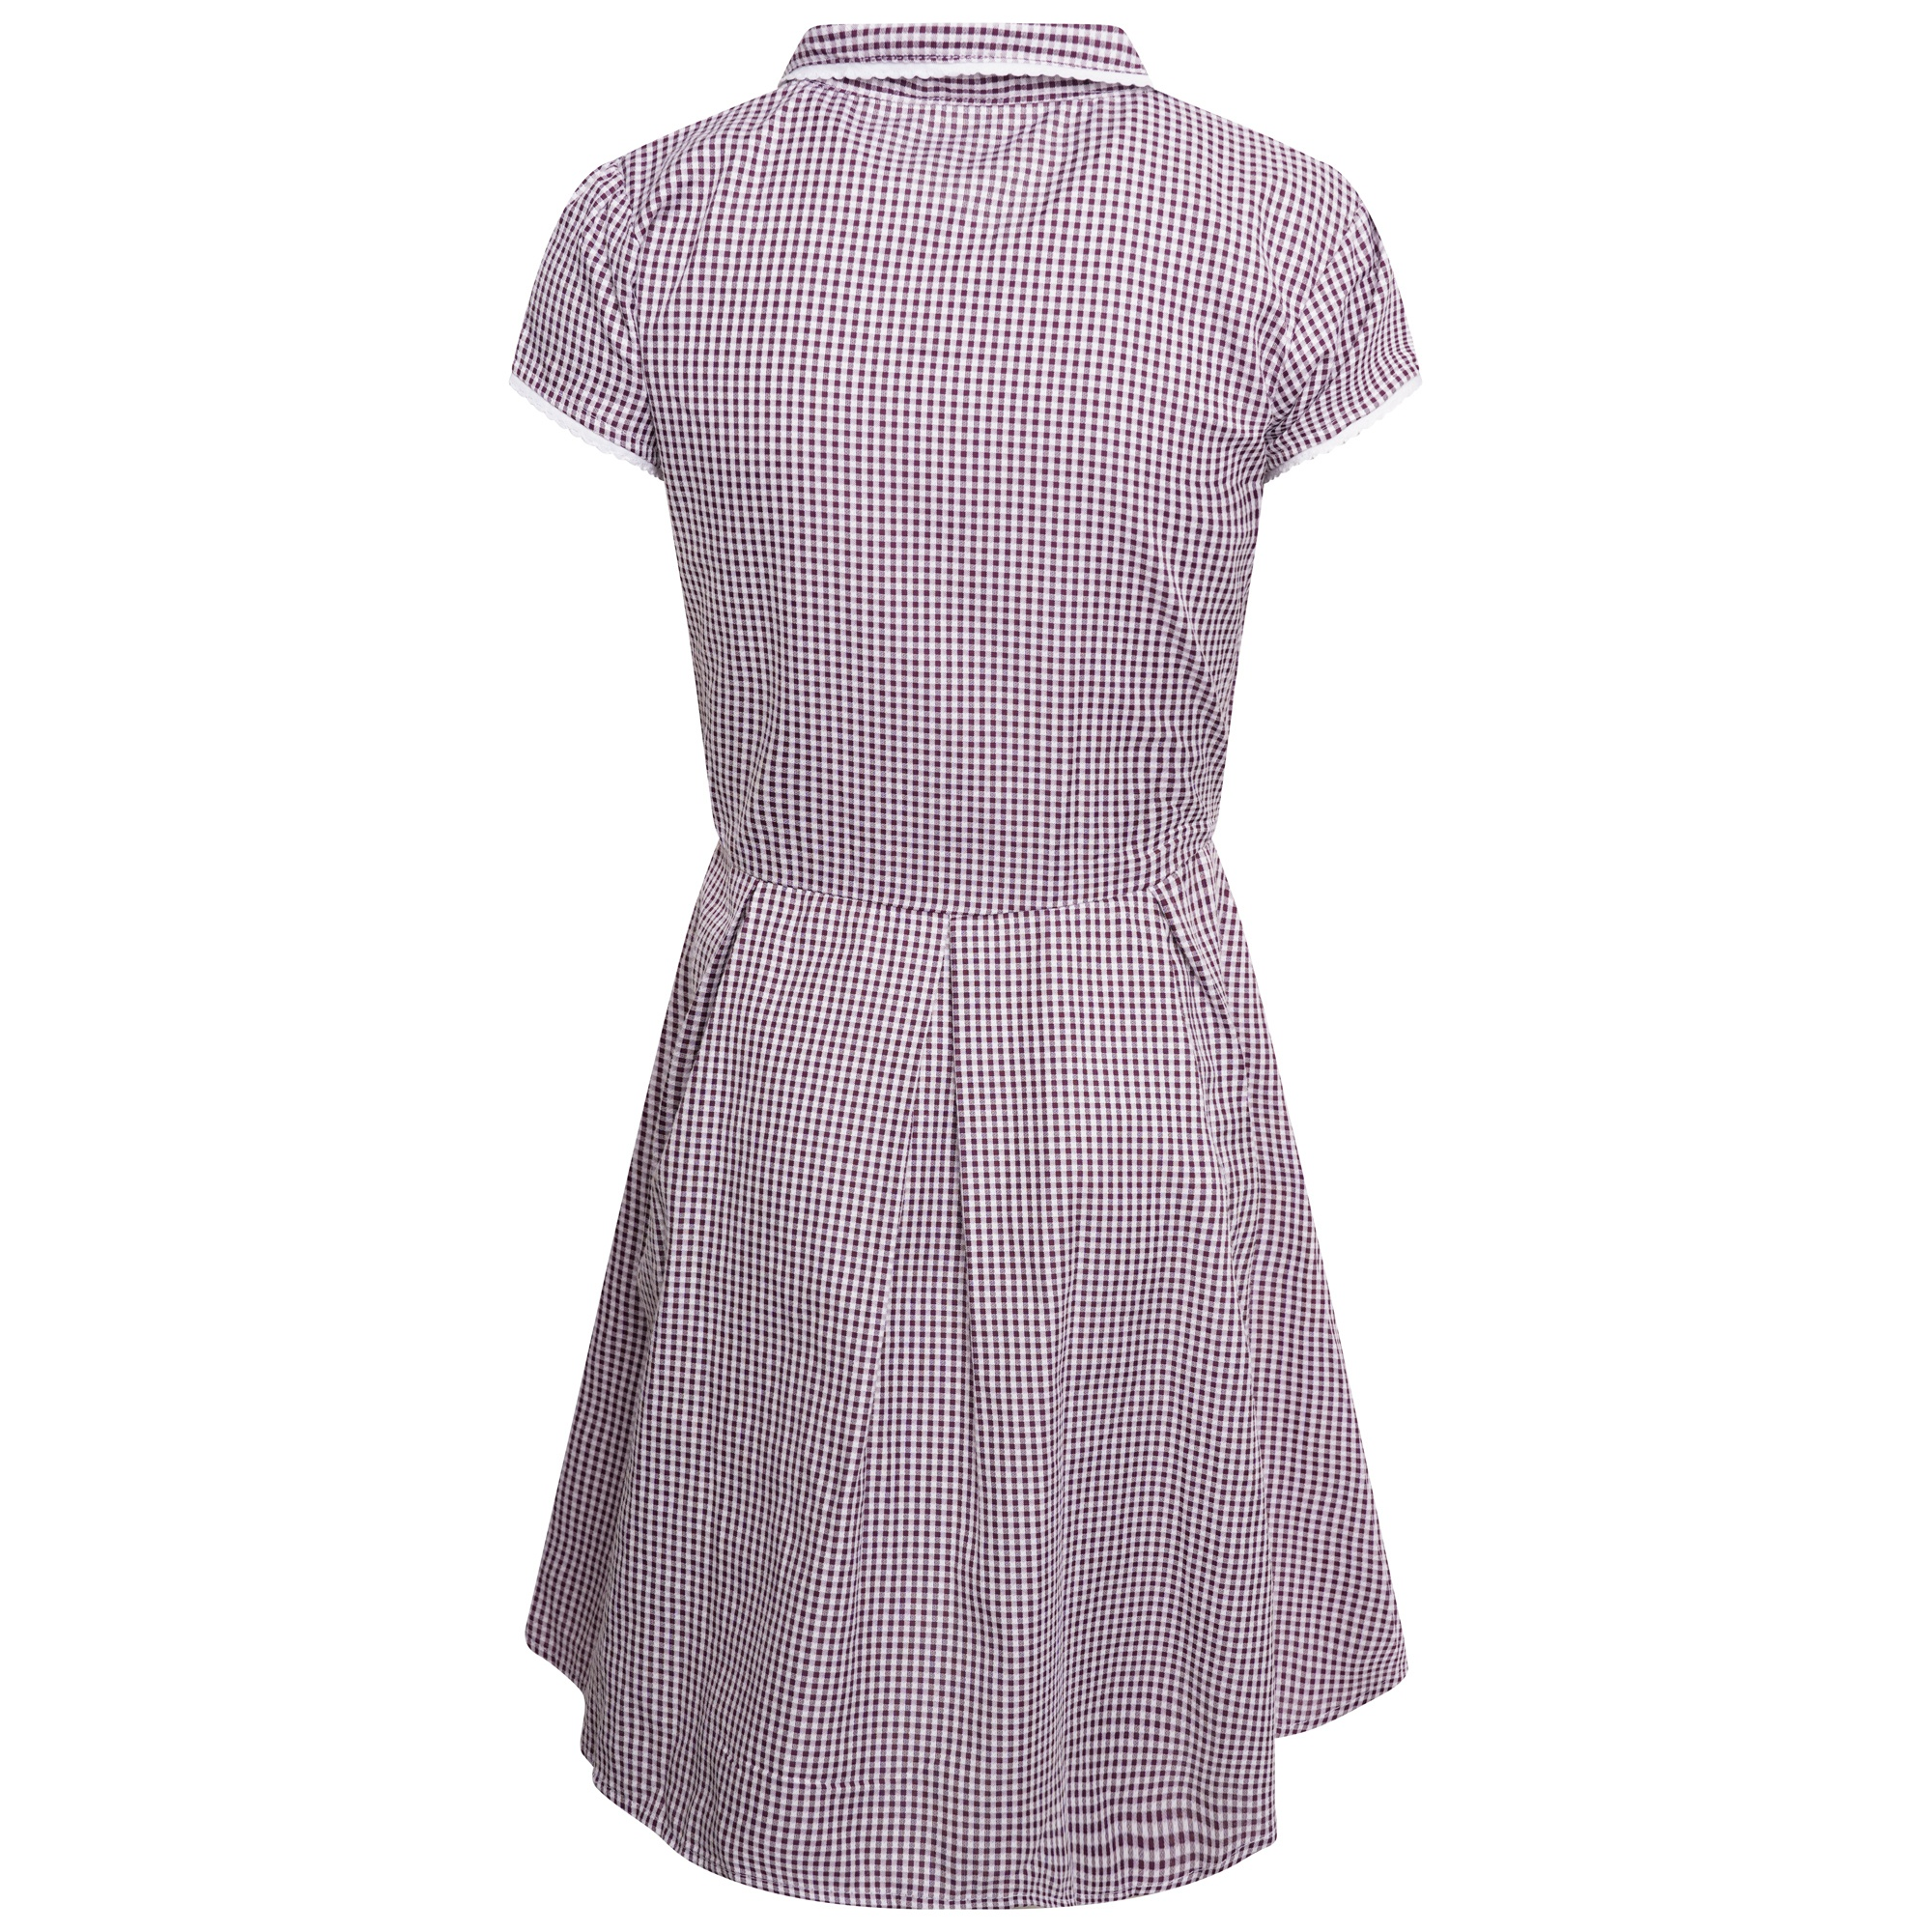 Girls School Gingham Dress Cotton Blend School Pleated Summer Dress Check